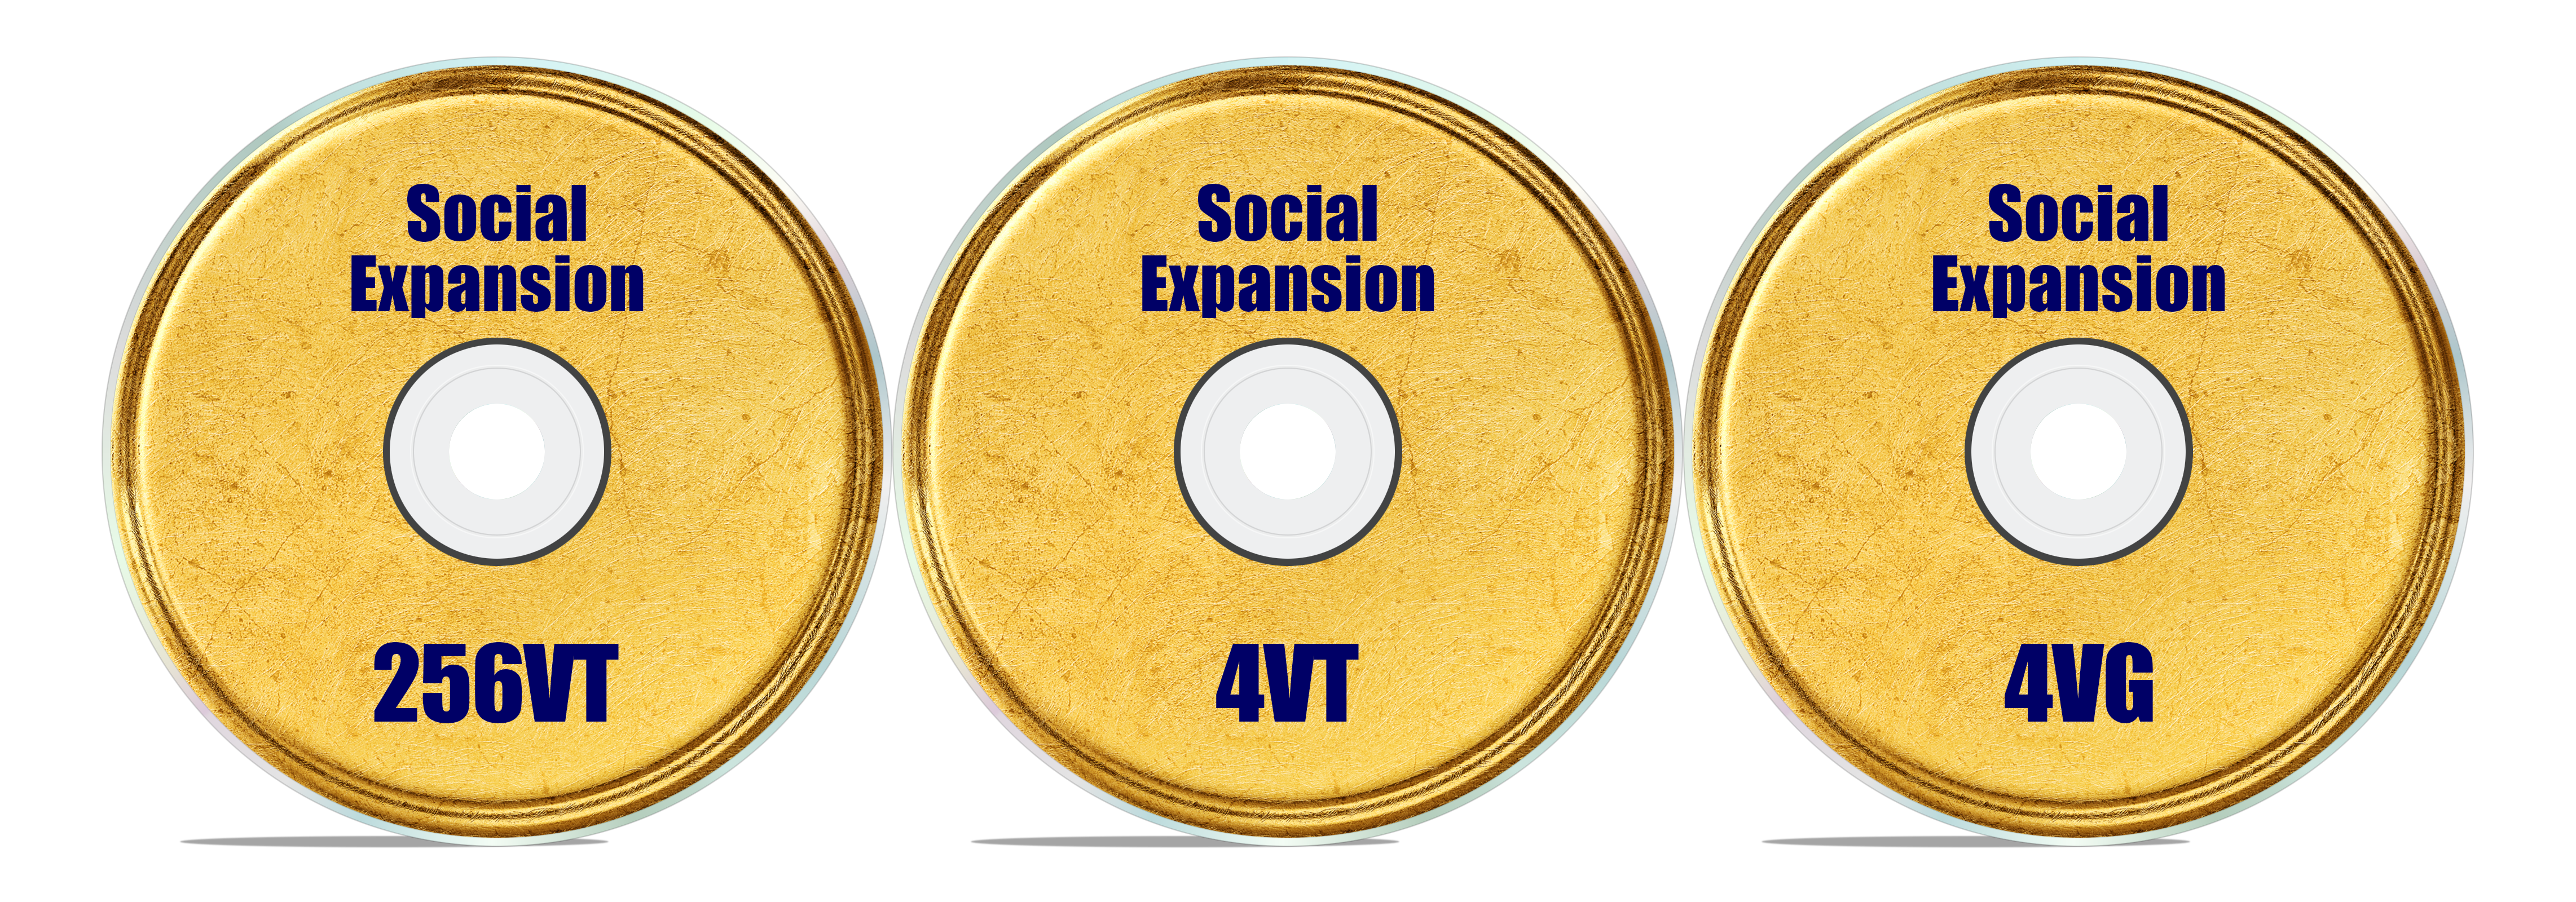 Social Expansion